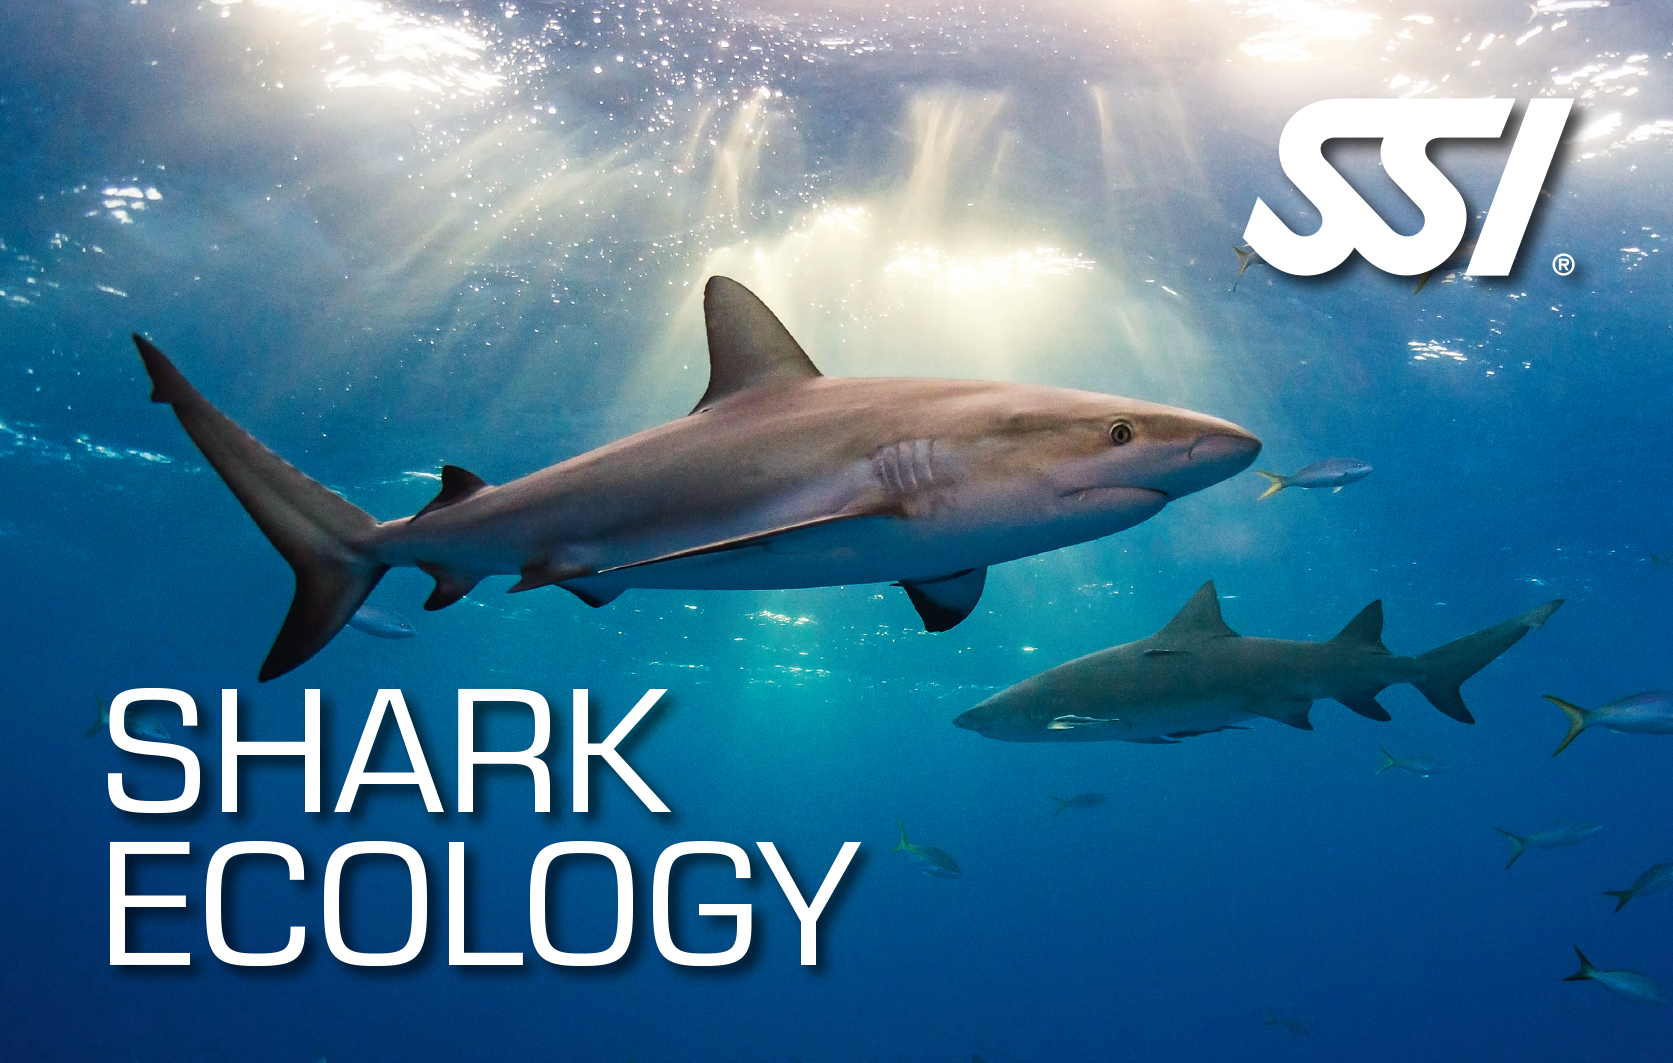 SSI Shark Ecology certification card